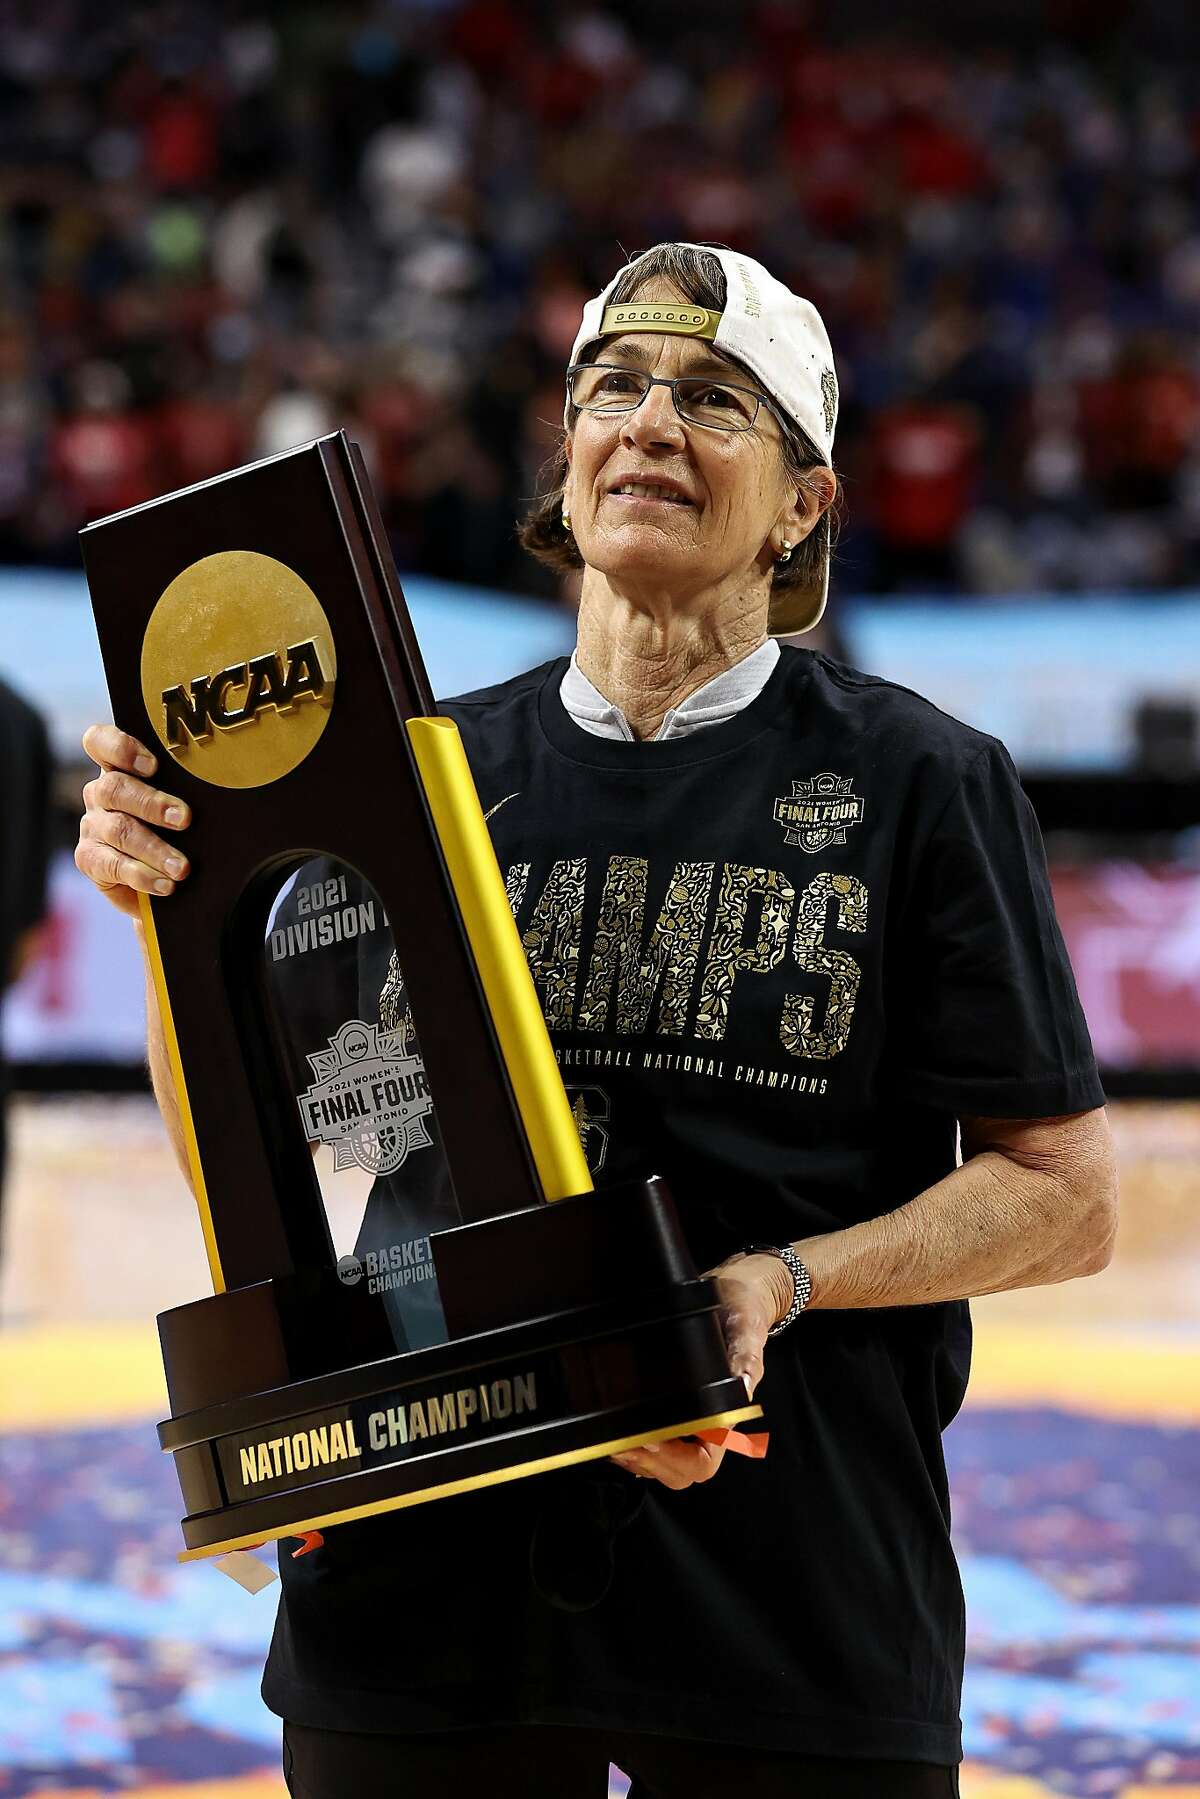 """Stanford's Tara VanDerveer won her third national title on Sunday night, but said of the NCAA's vastly different approach to the men's and women's games: """"This is purposeful and hurtful. I feel betrayed by the NCAA."""""""